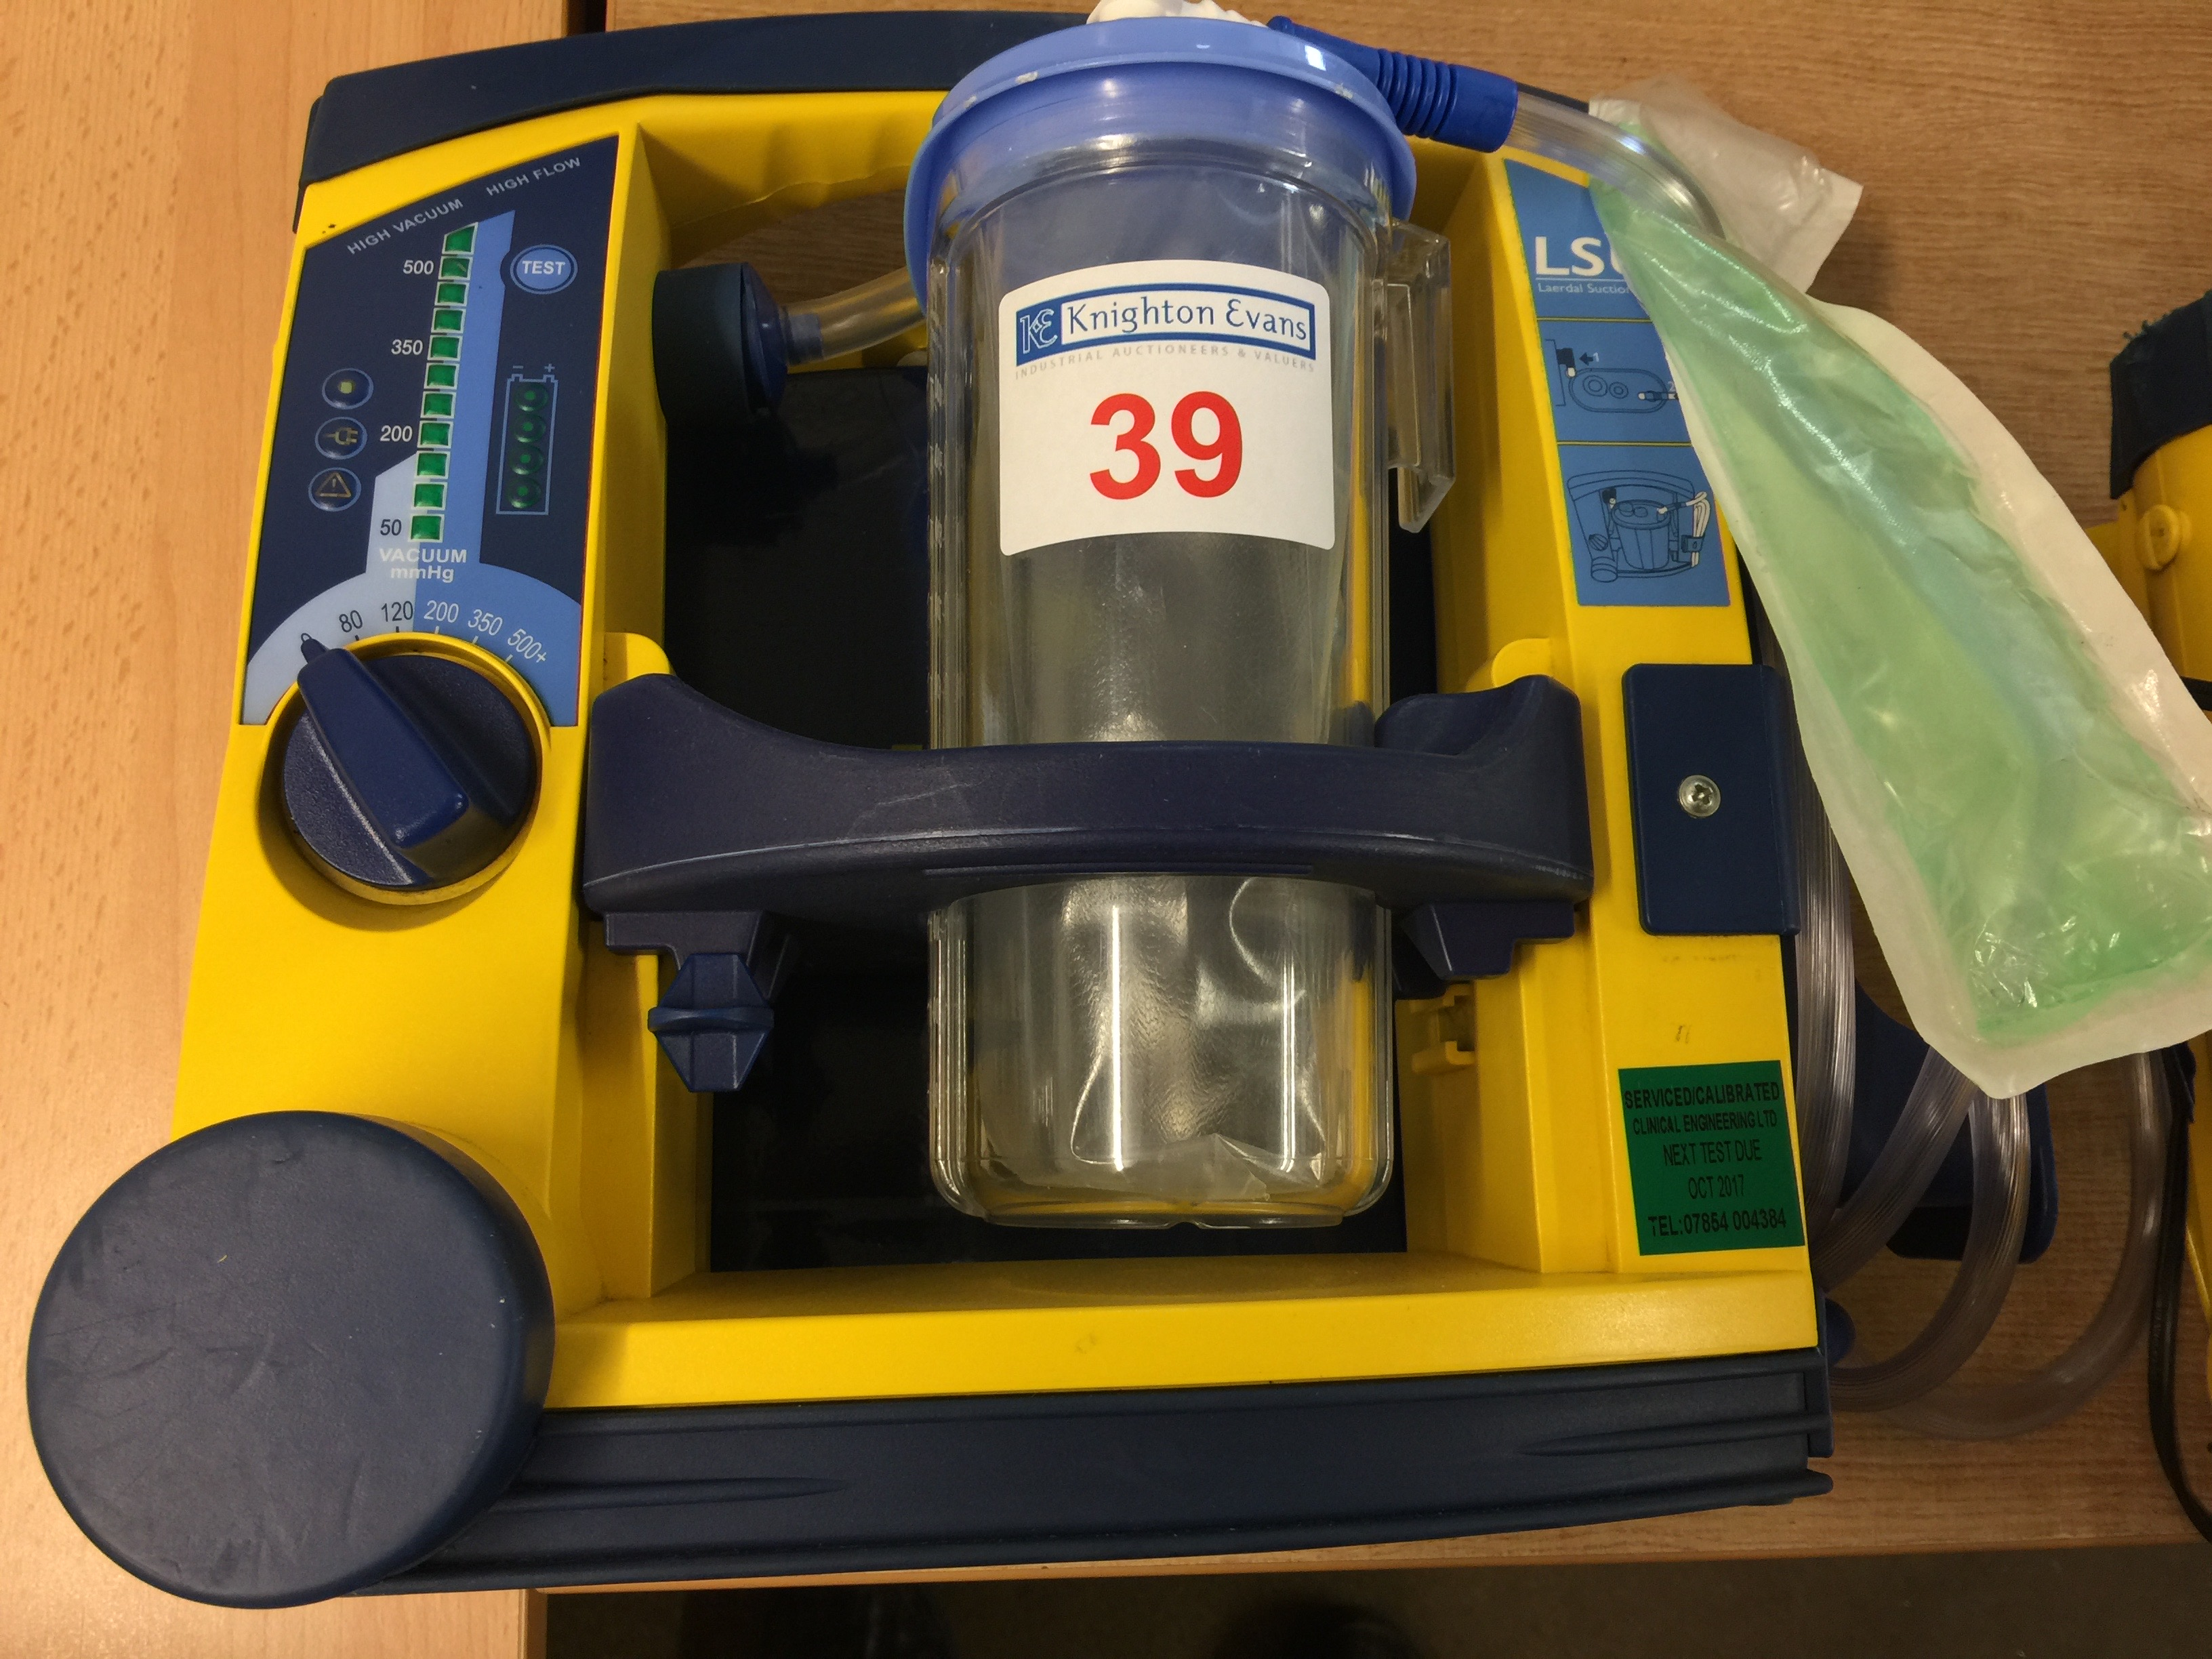 Lot 39 - Laerdal LSU portable suction unit with mounting plate, test due October 2017 (no 12v charger)